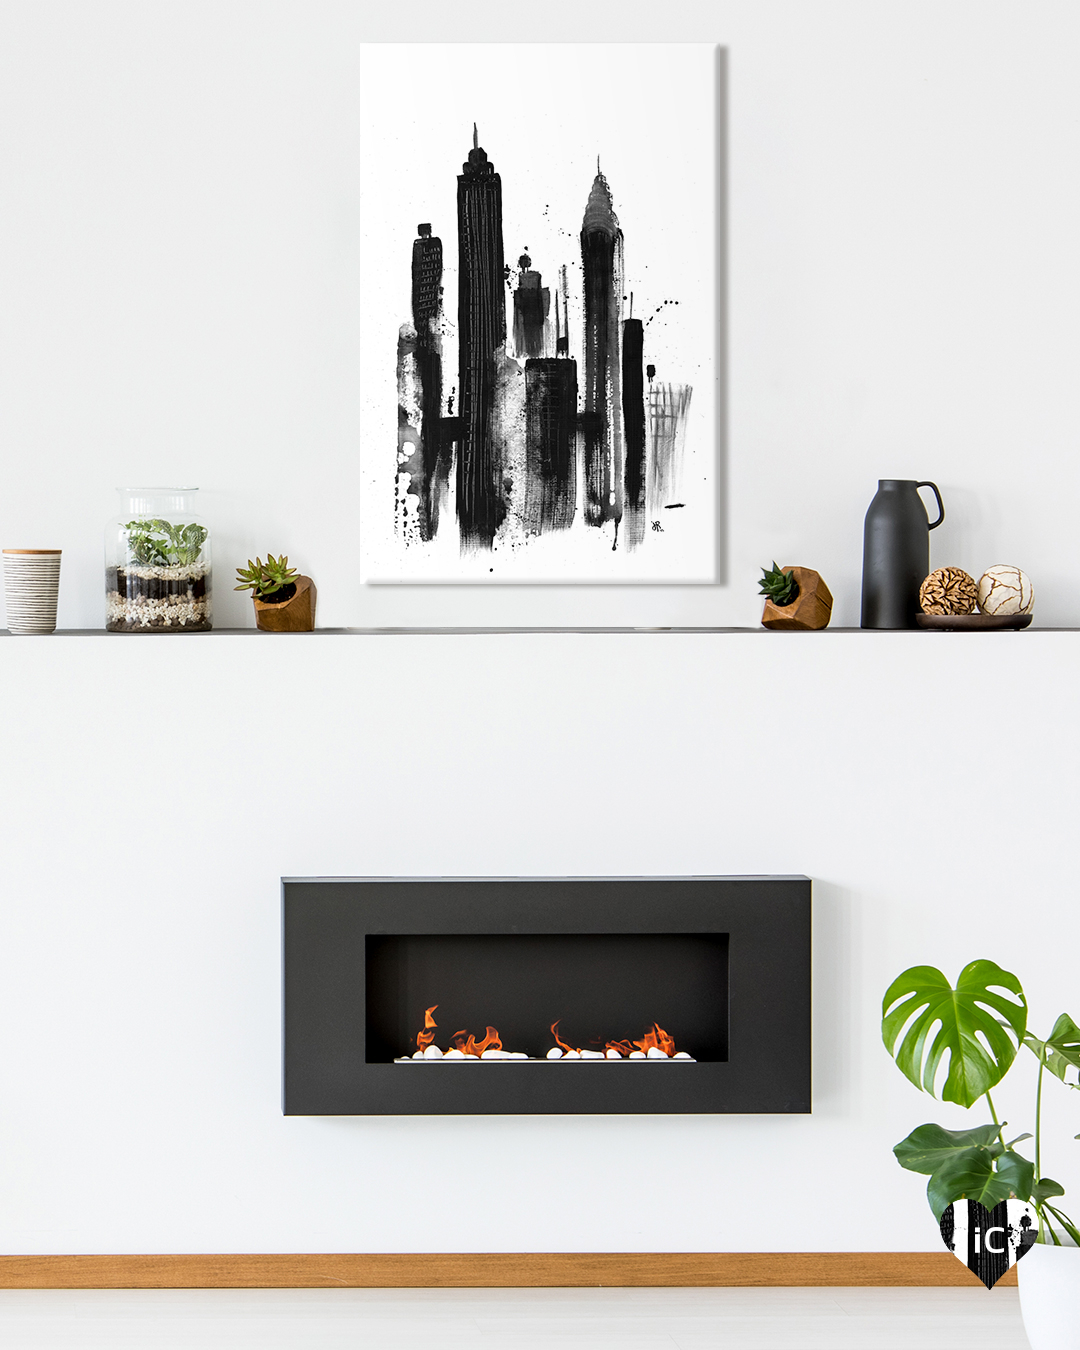 an all black painted version of new york city's skyline with crysler and empire state building